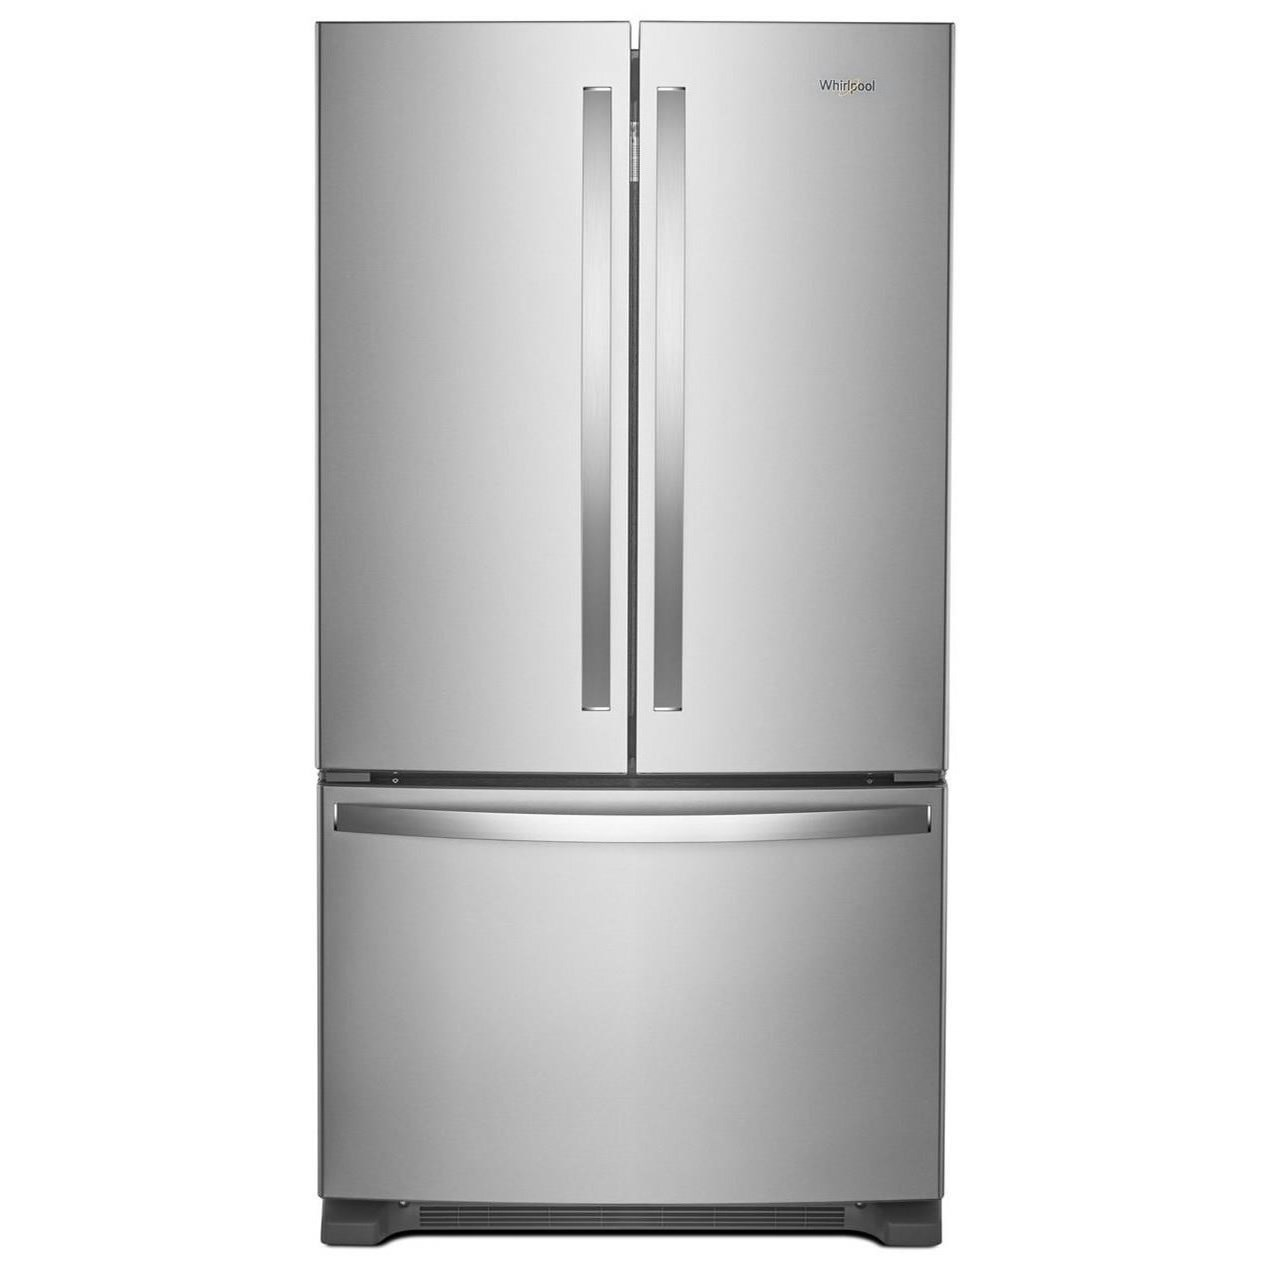 Whirlpool French Door Refrigerators 36-inch Wide French Door Refrigerator - Item Number: WRF535SWHZ